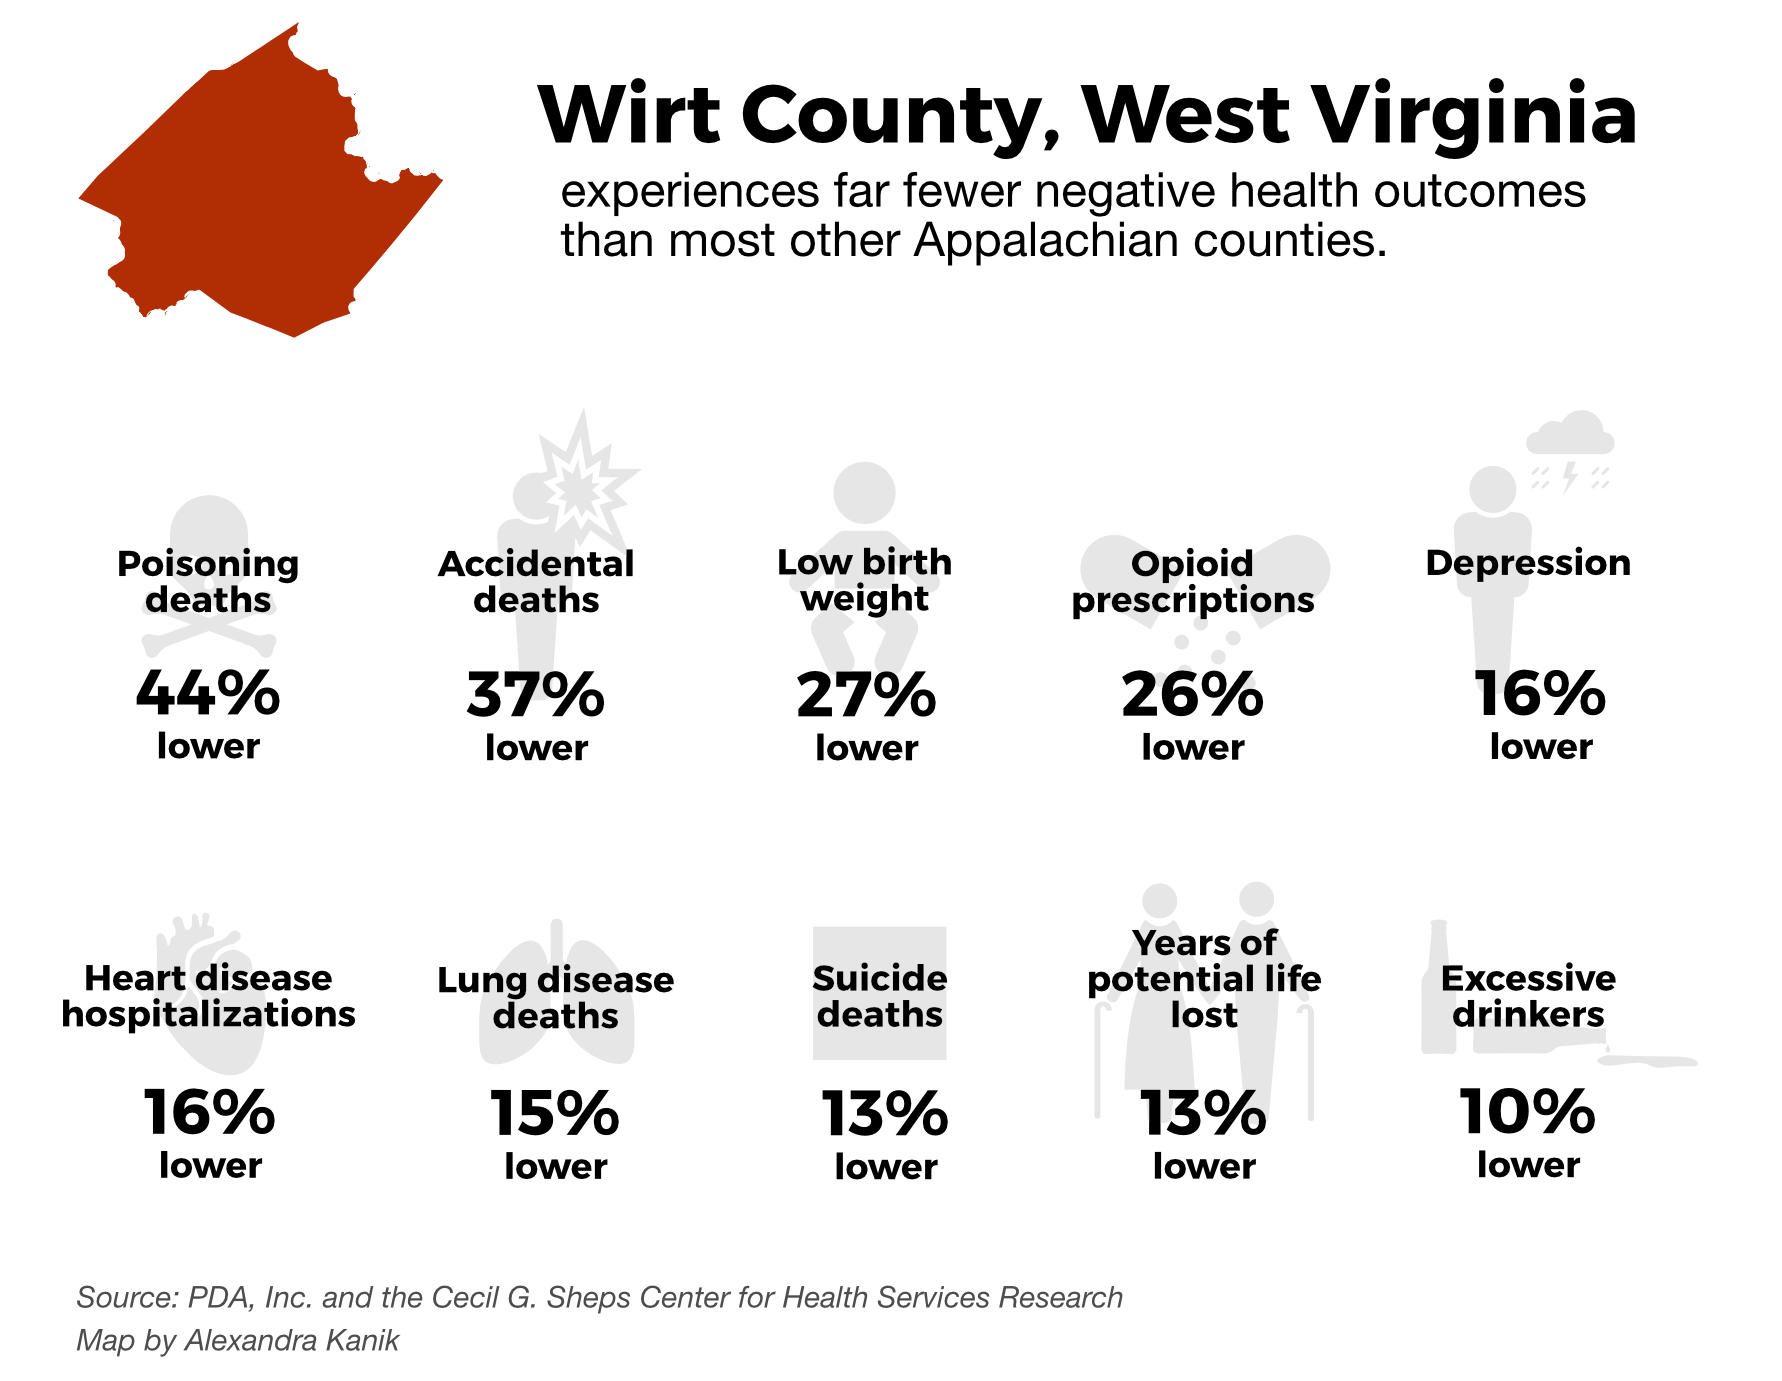 Percentages of state improvement in Wirt County